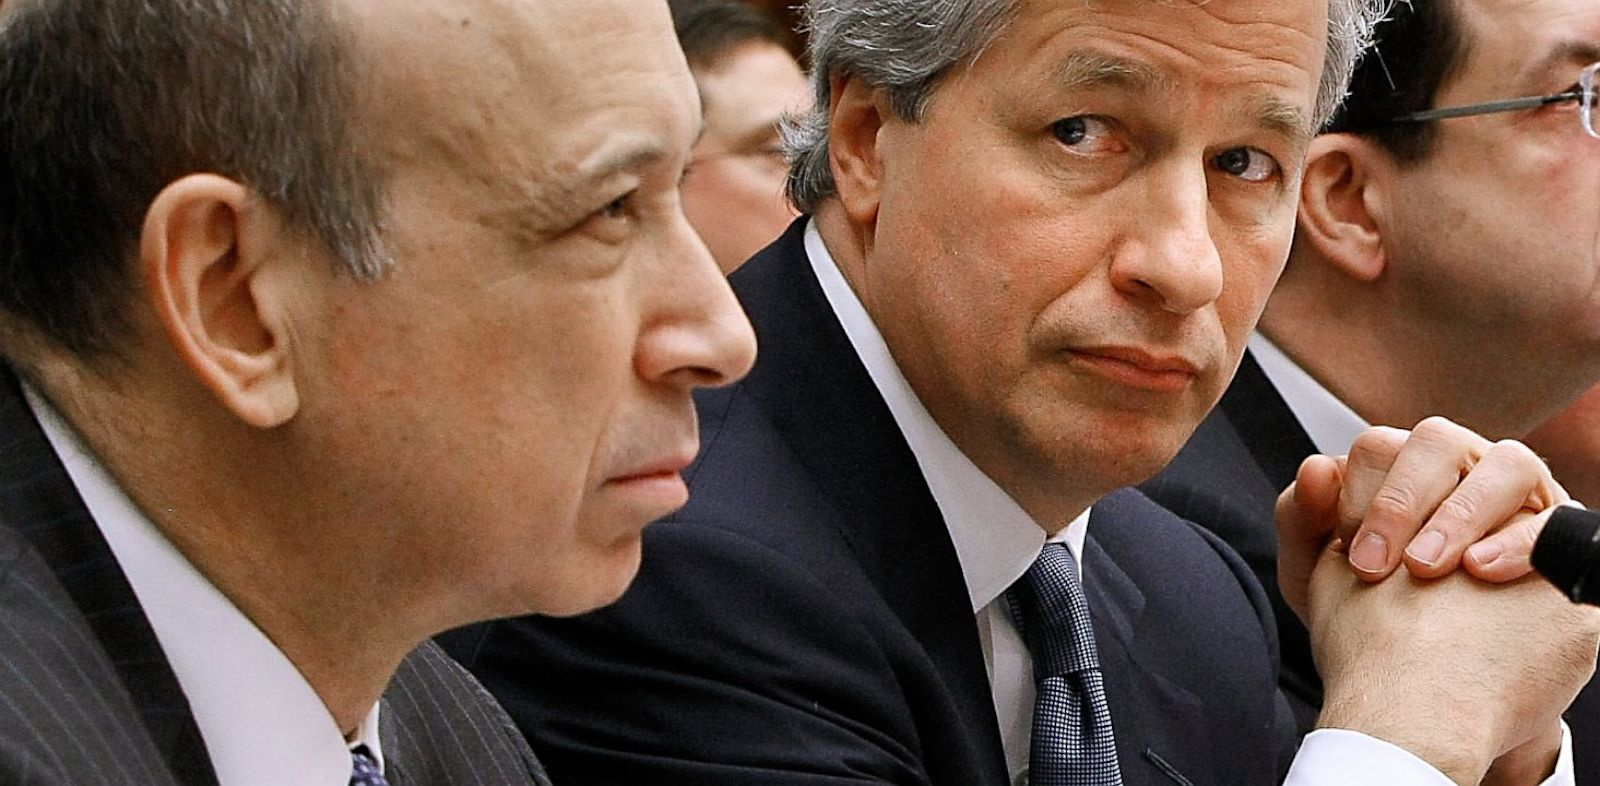 PHOTO: Lloyd Blankfein and Jamie Dimon